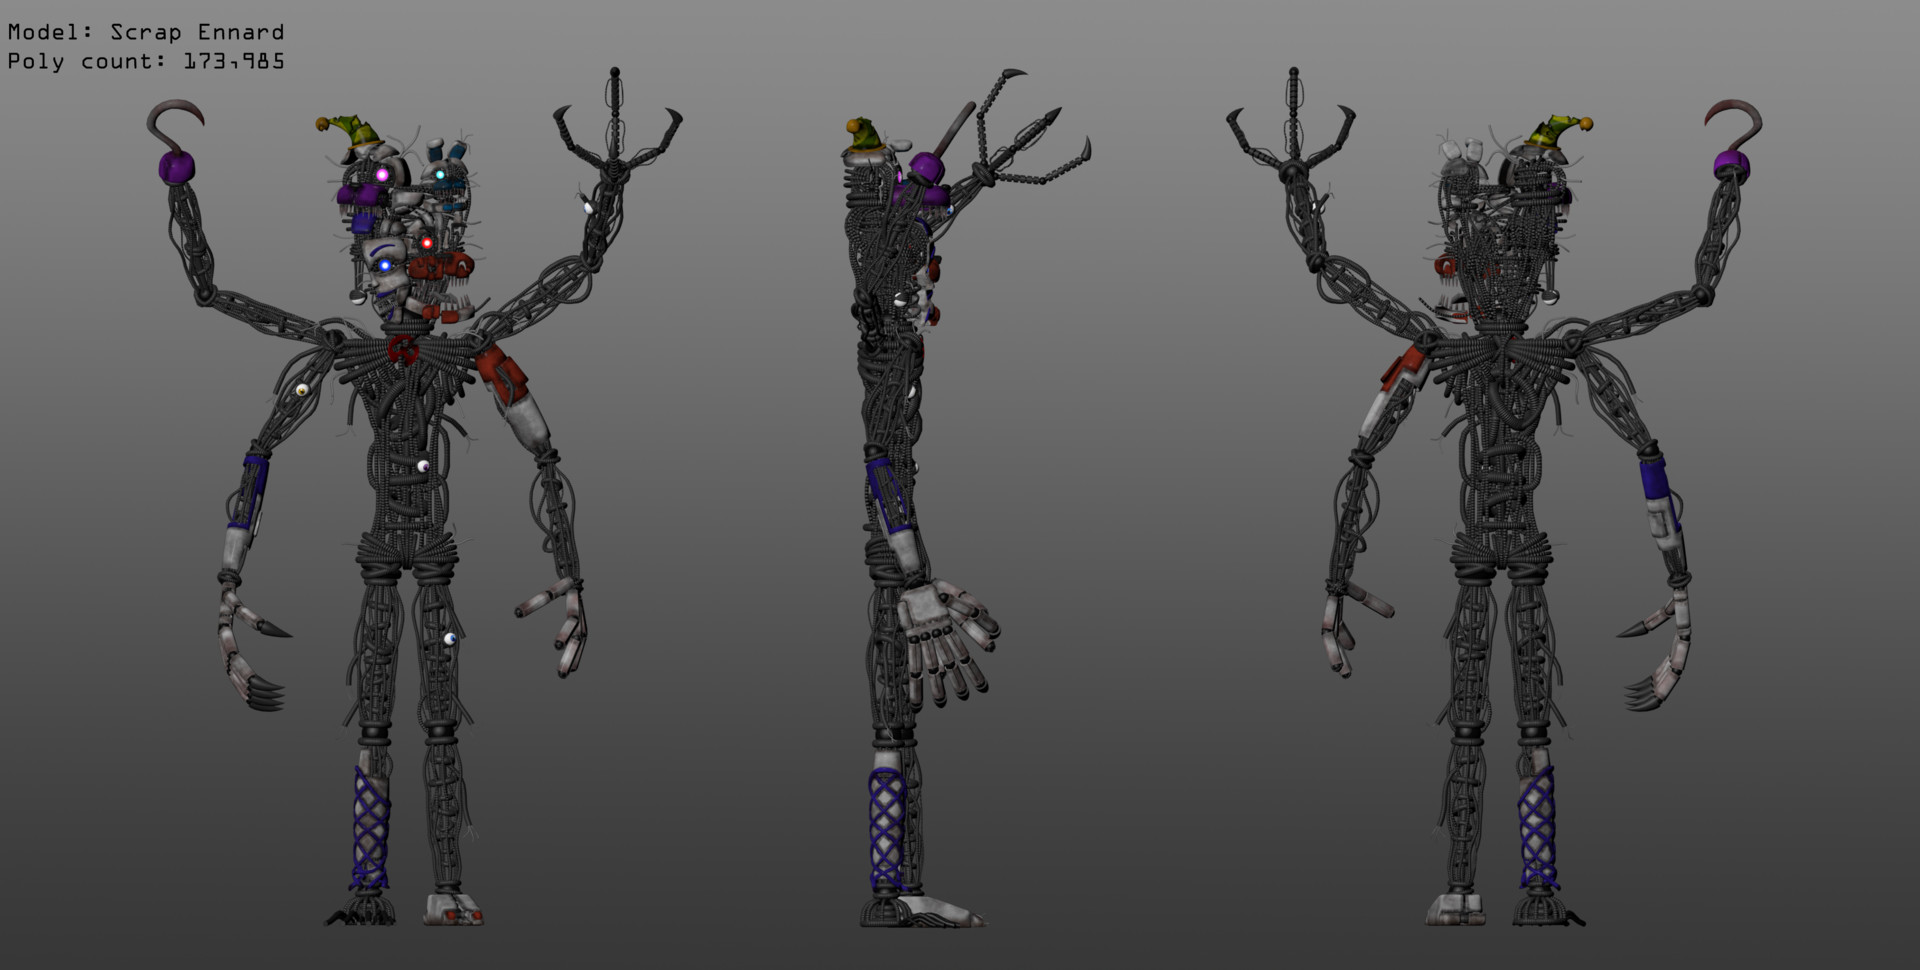 Thomas Honeybell FNaF fanmade model Scrap Ennard